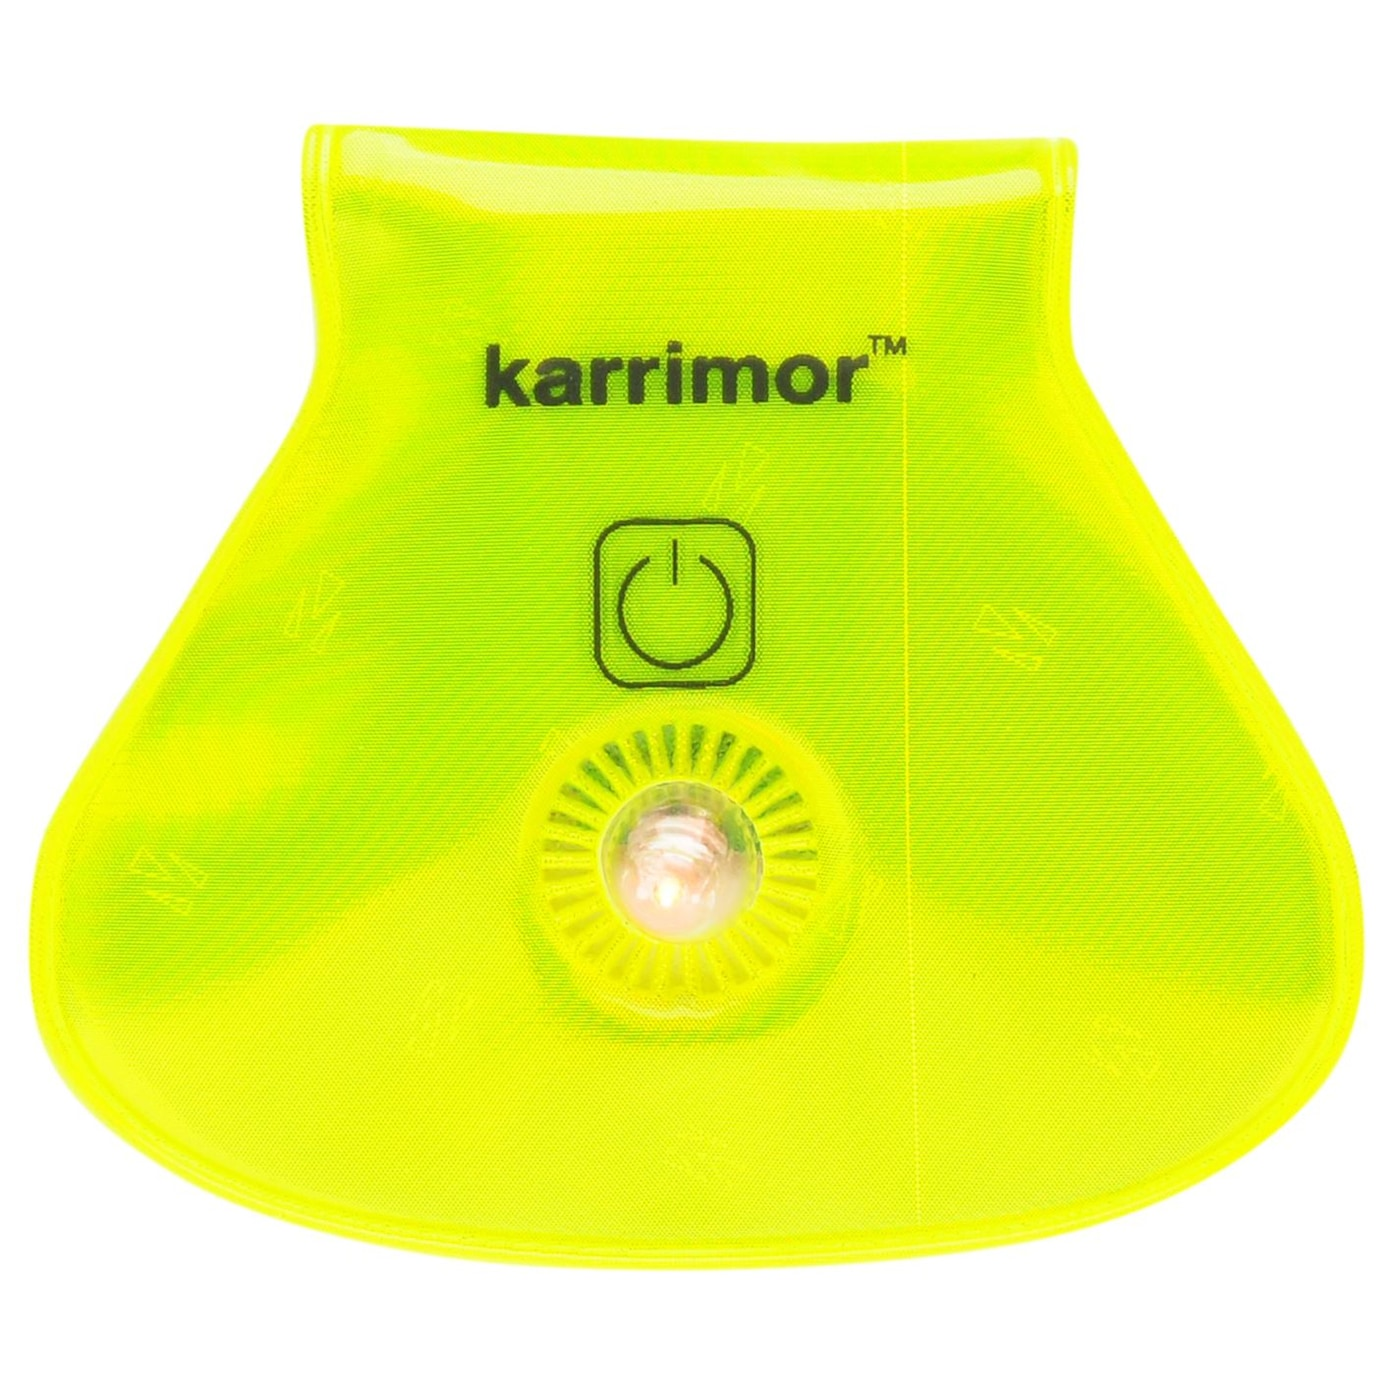 Karrimor LED Reflector